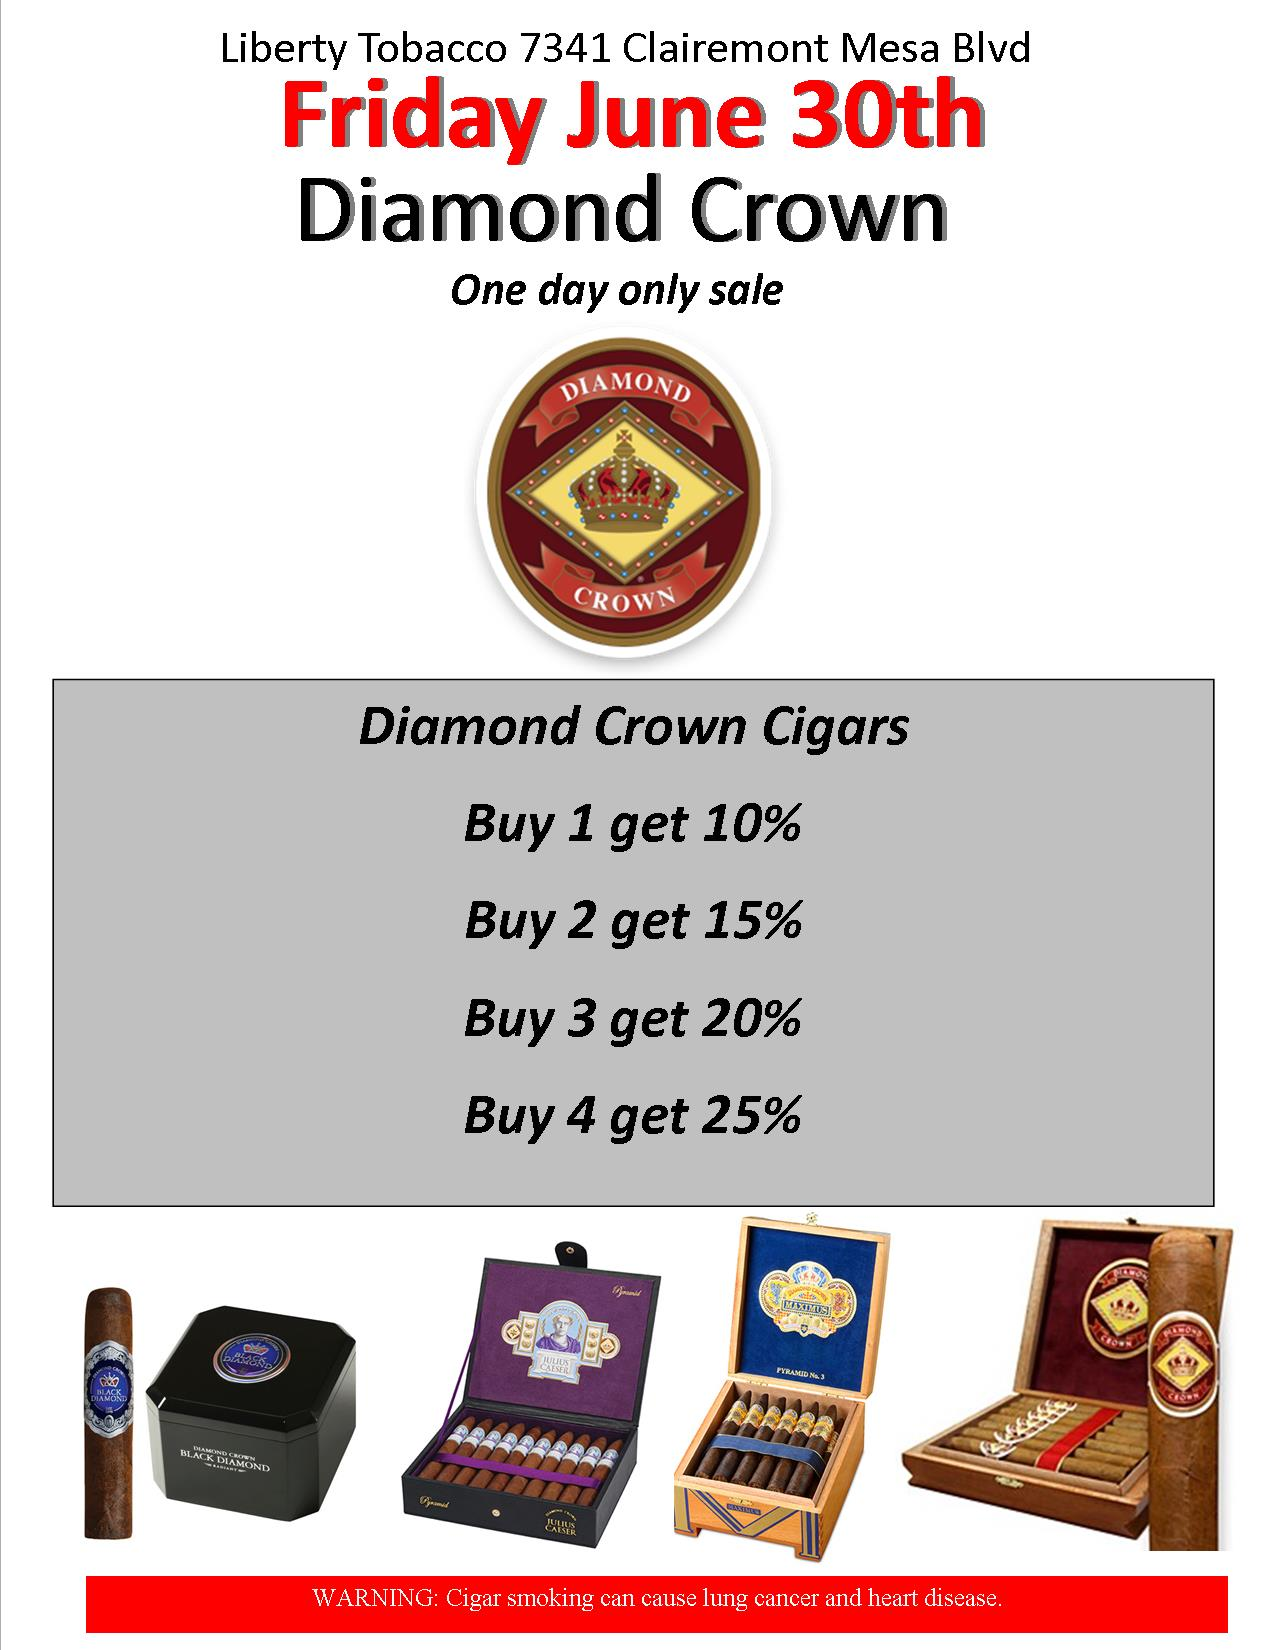 Diamond Crown One Day Sale at Liberty Tobacco Kearny Mesa